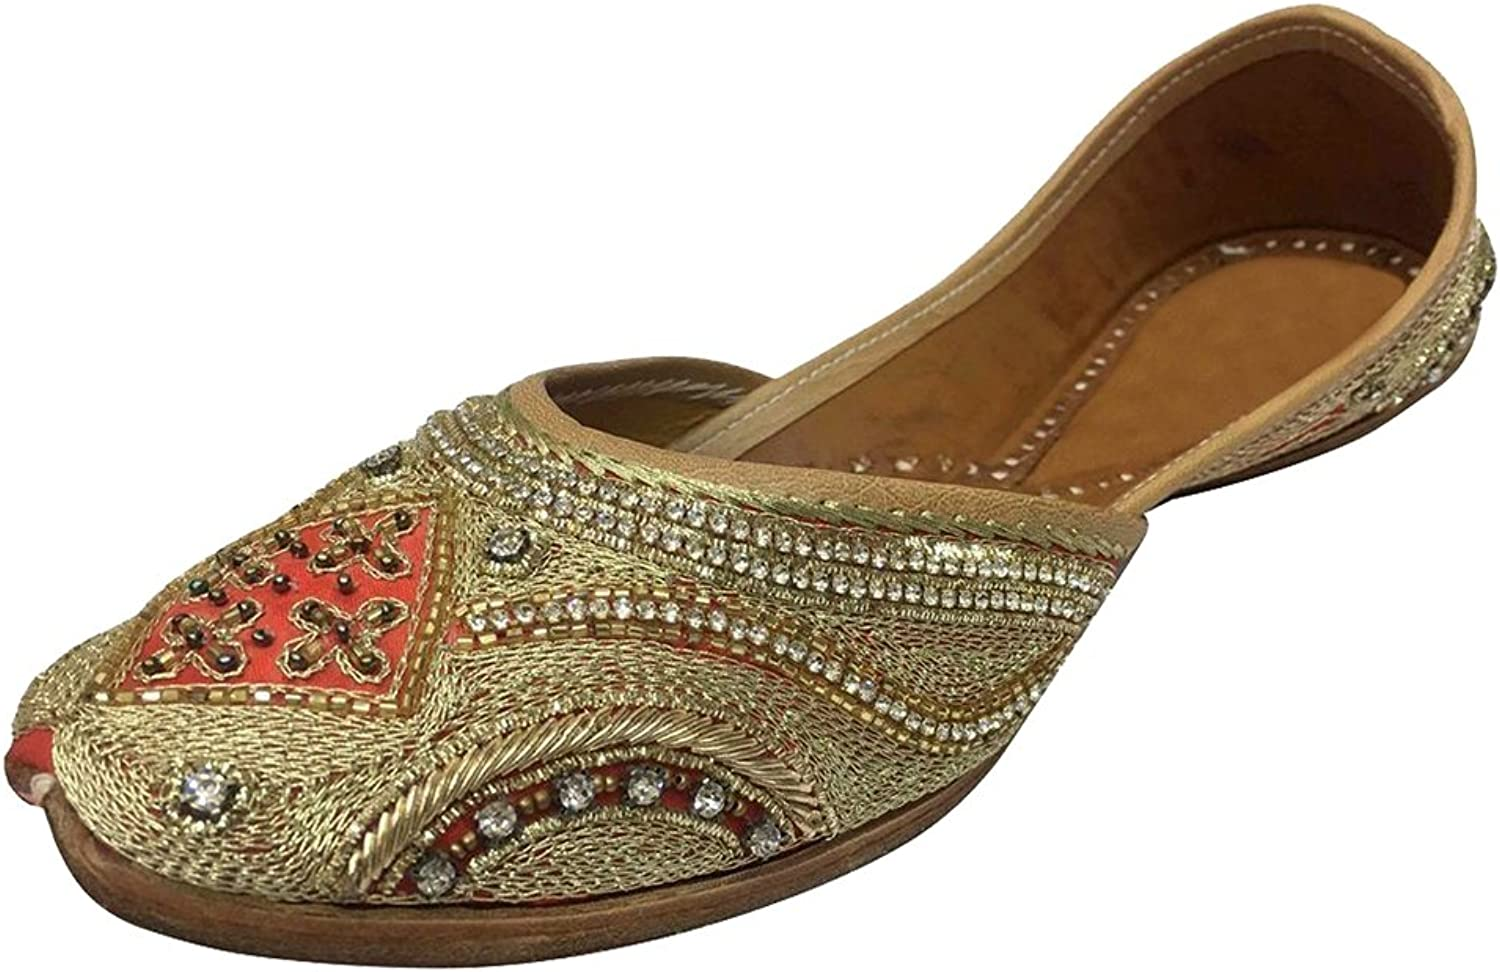 Step n Style Indian shoes Khussa Jutti Bridal shoes Traditional Salwar Suit Sandals